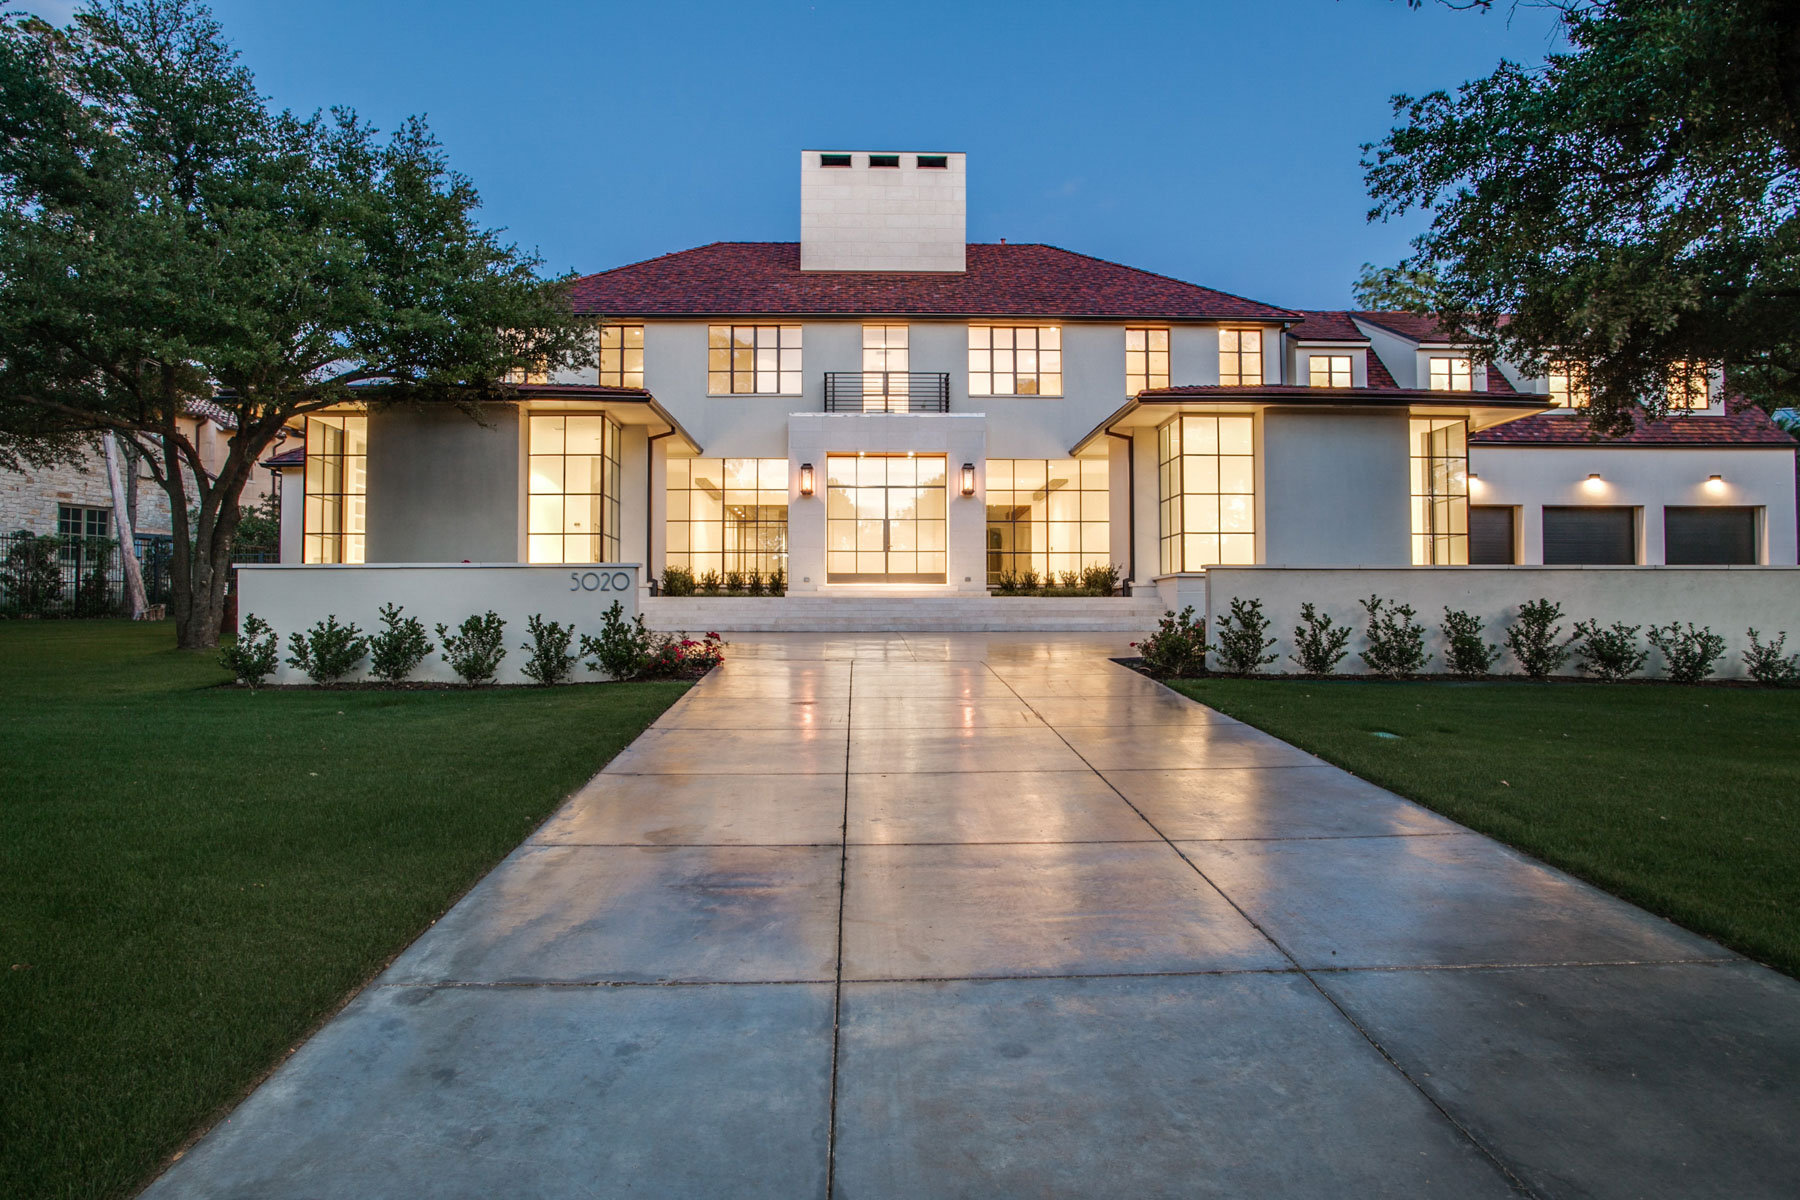 Single Family Home for Sale at Custom Estate in Old Preston Hollow 5020 Park Ln Dallas, Texas, 75220 United States